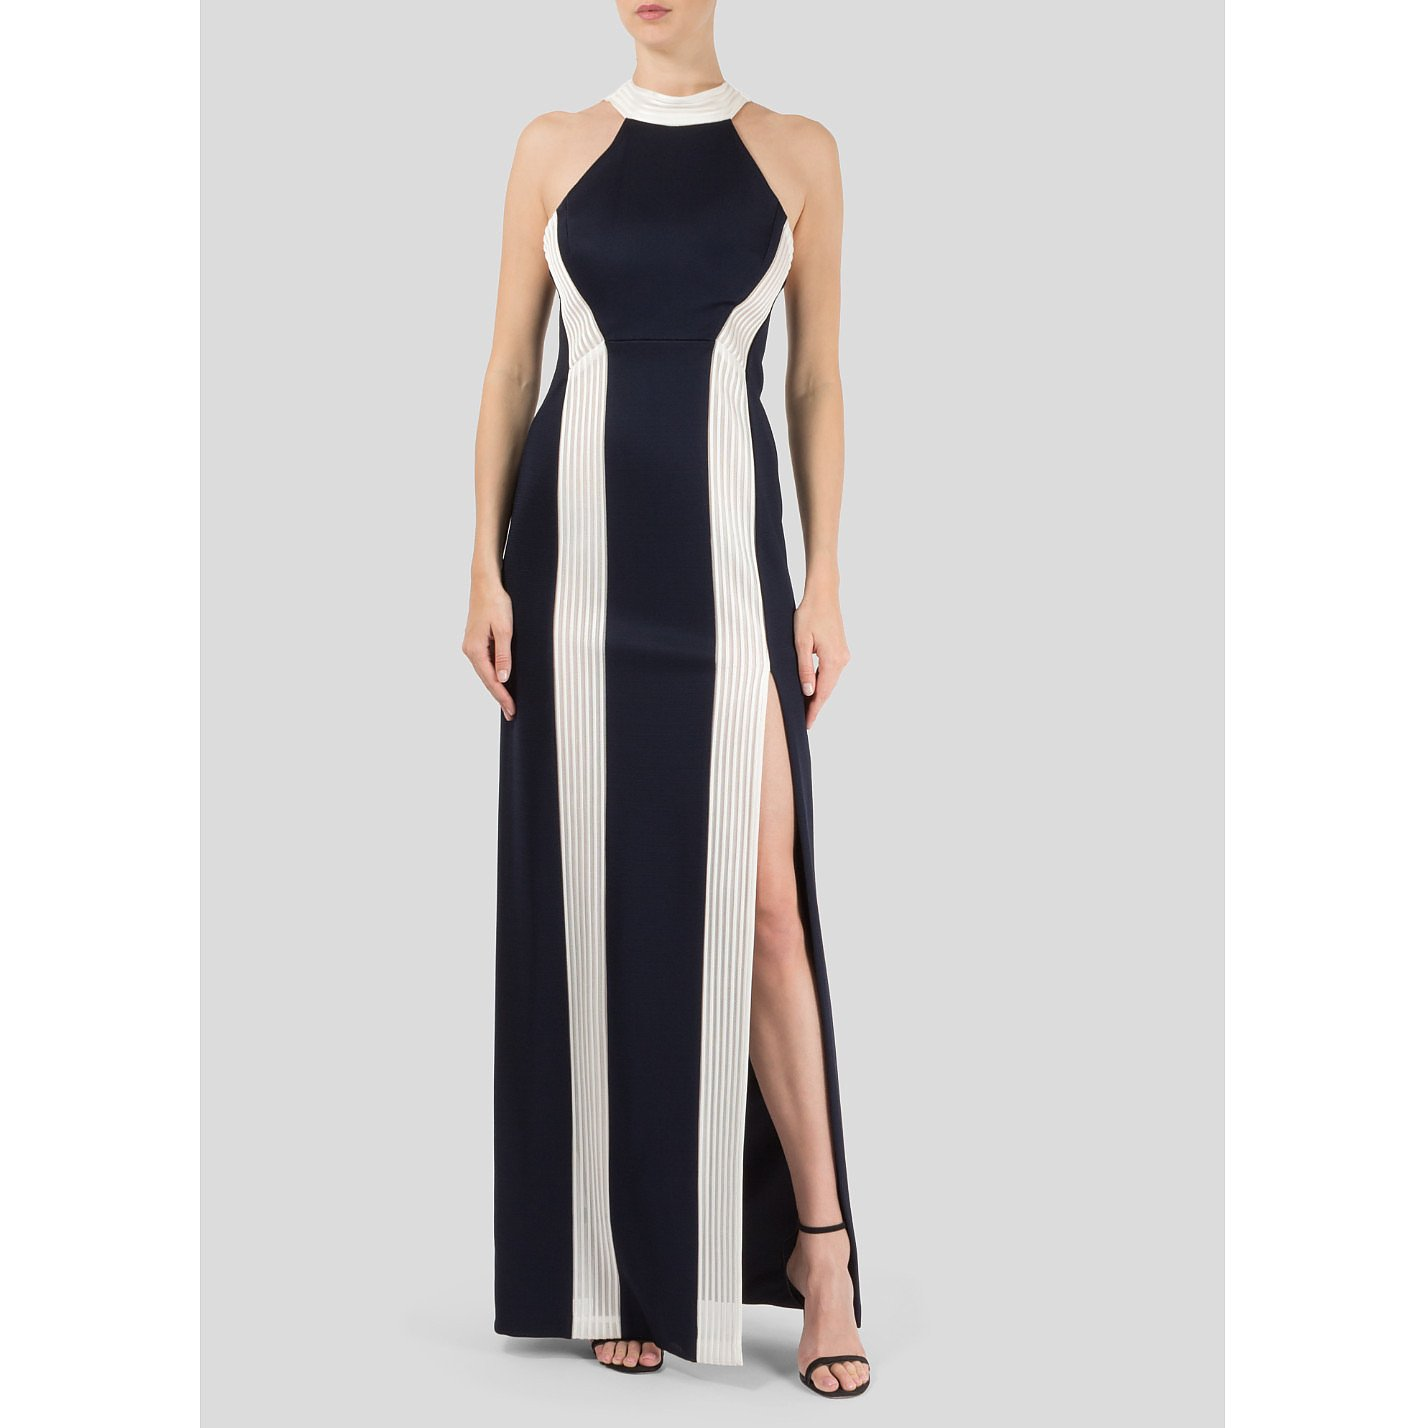 Galvan London Panelled Gown